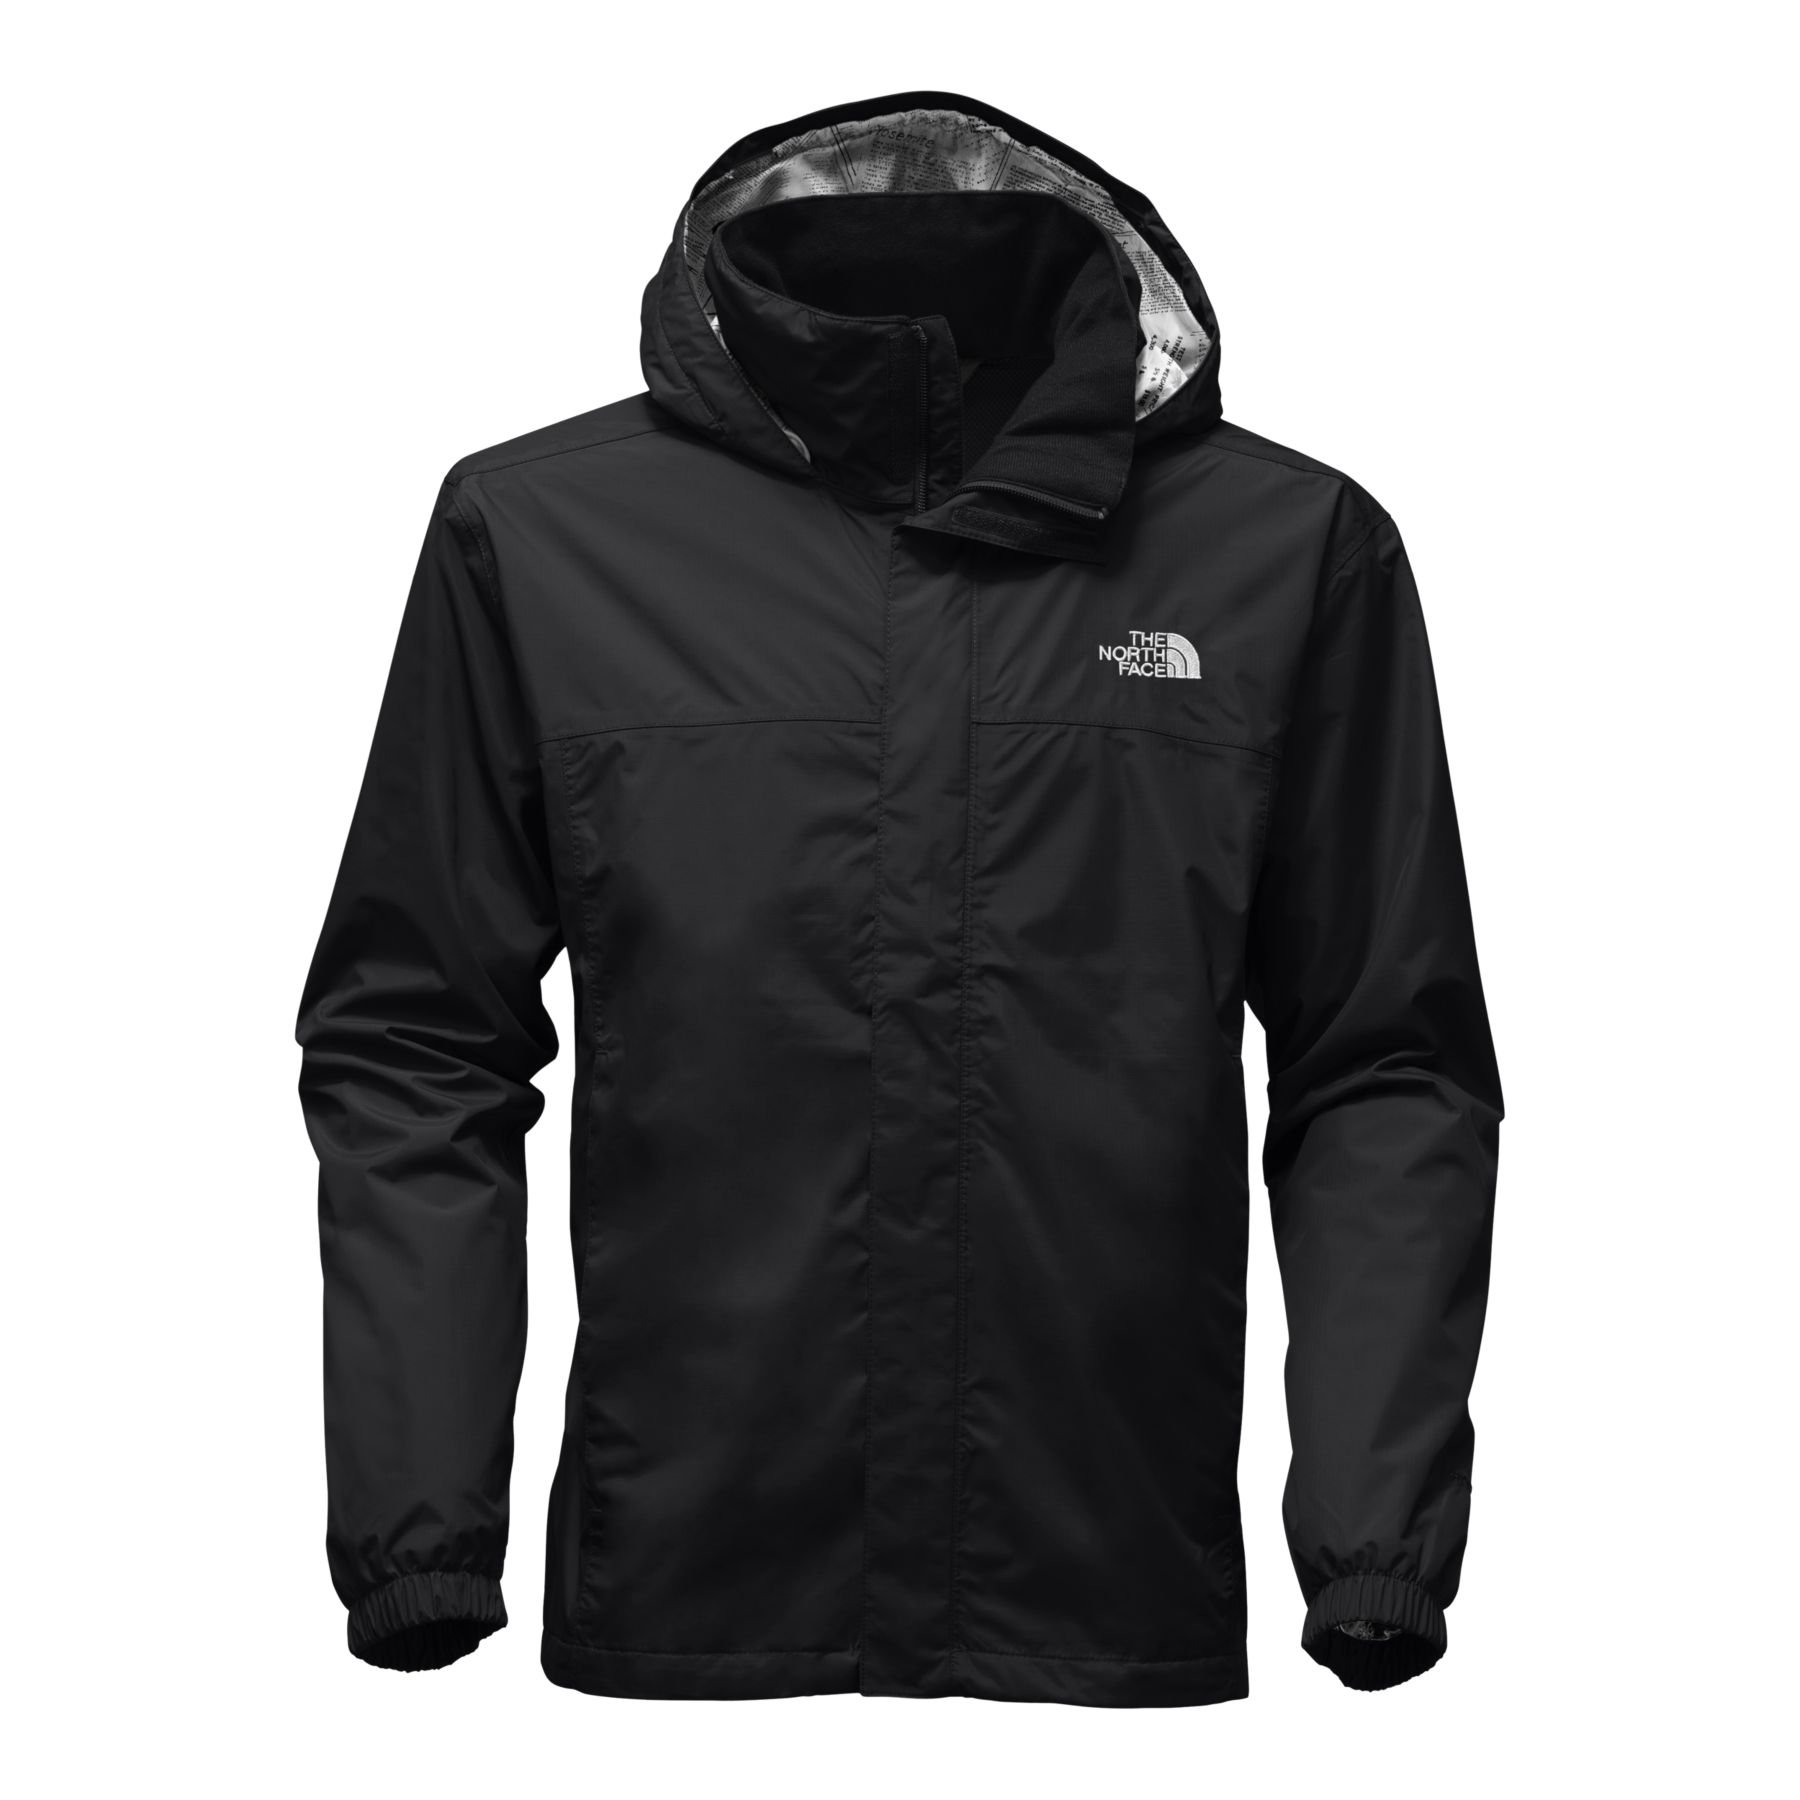 The North Face Mens Resolve 2 Jacket - TNF Black/TNF White Light Gray Collar Print - L by The North Face